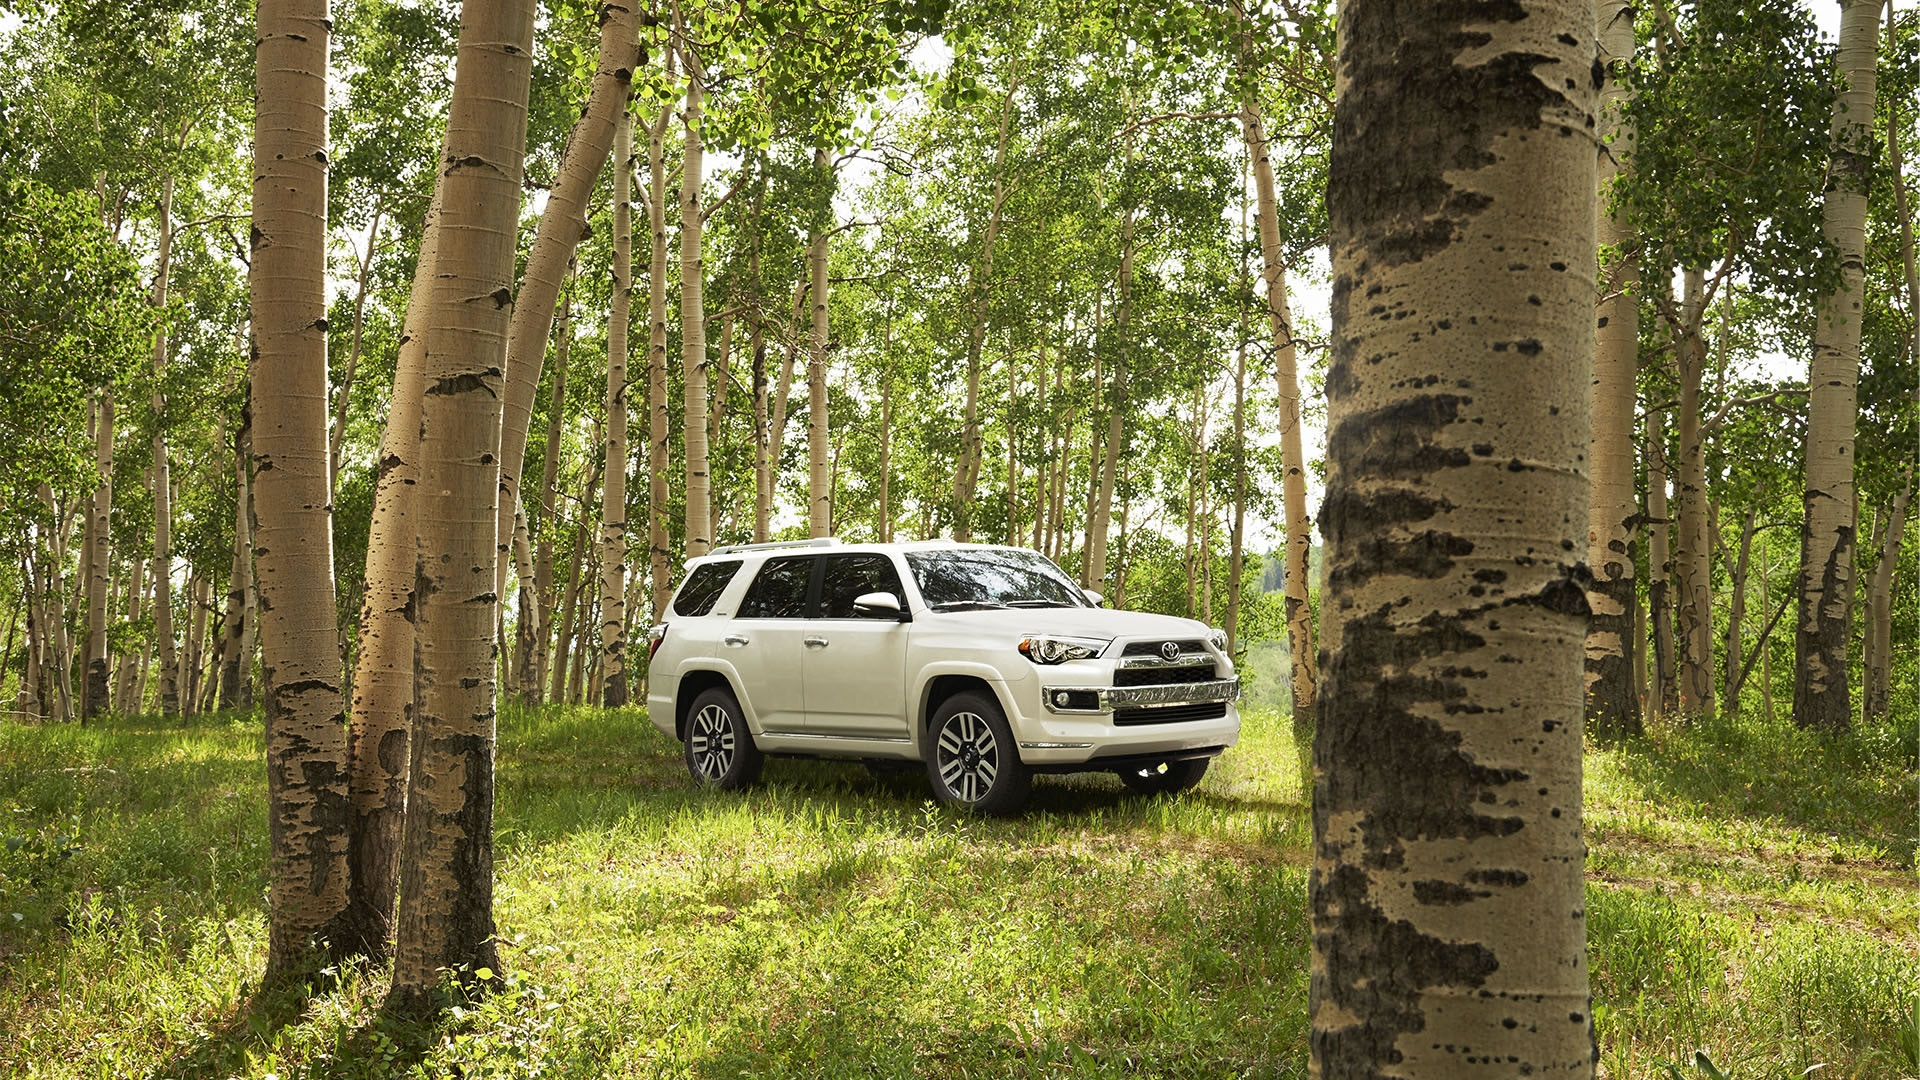 2019 Toyota 4Runner for Sale near Olathe, KS